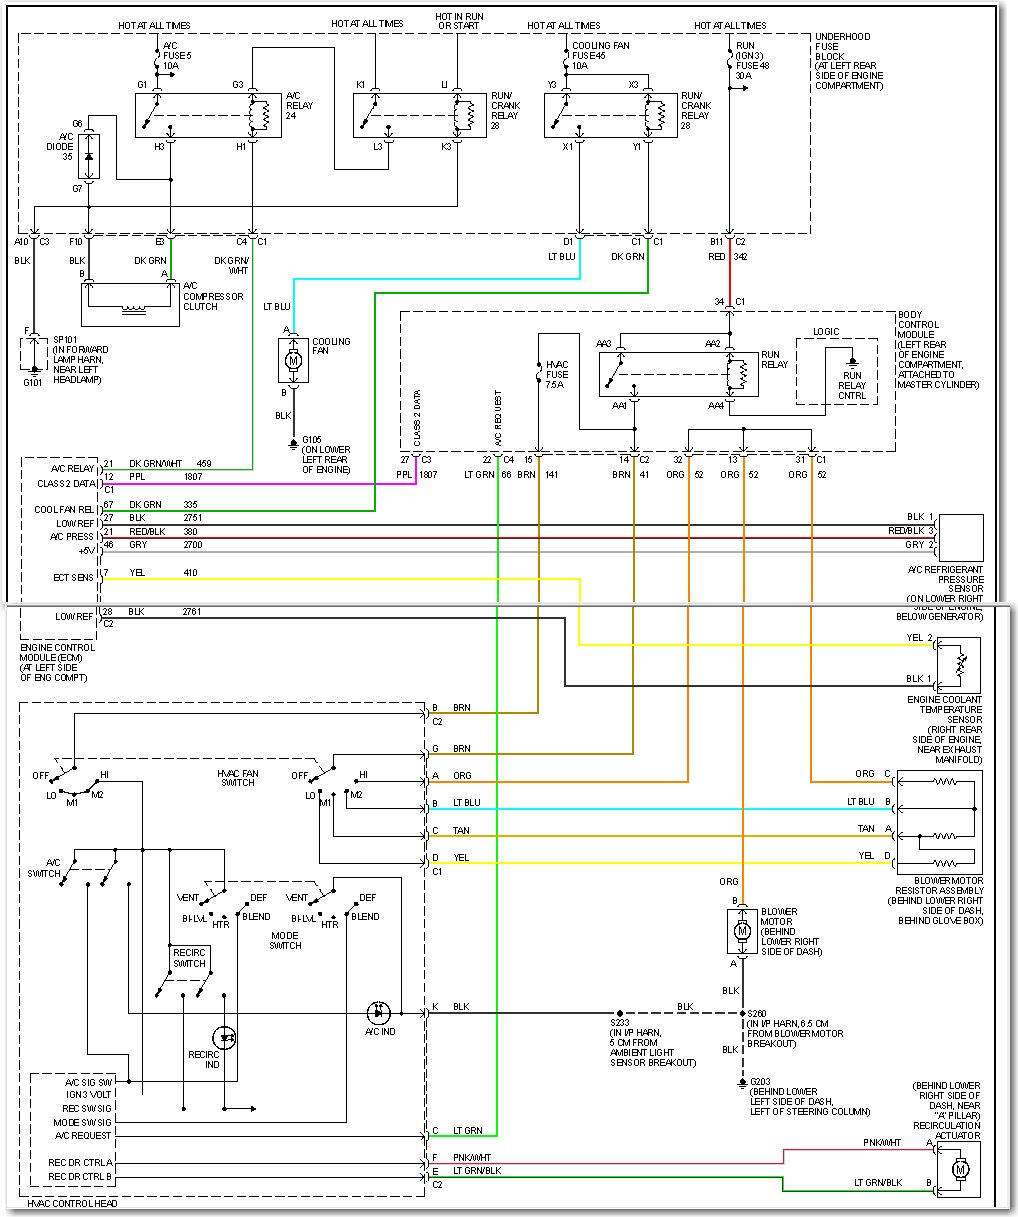 07 saturn ion headlight wiring diagram my 2003 saturn ion 4 door sedans air conditioning and ... 2003 saturn ion ac wiring diagram #11